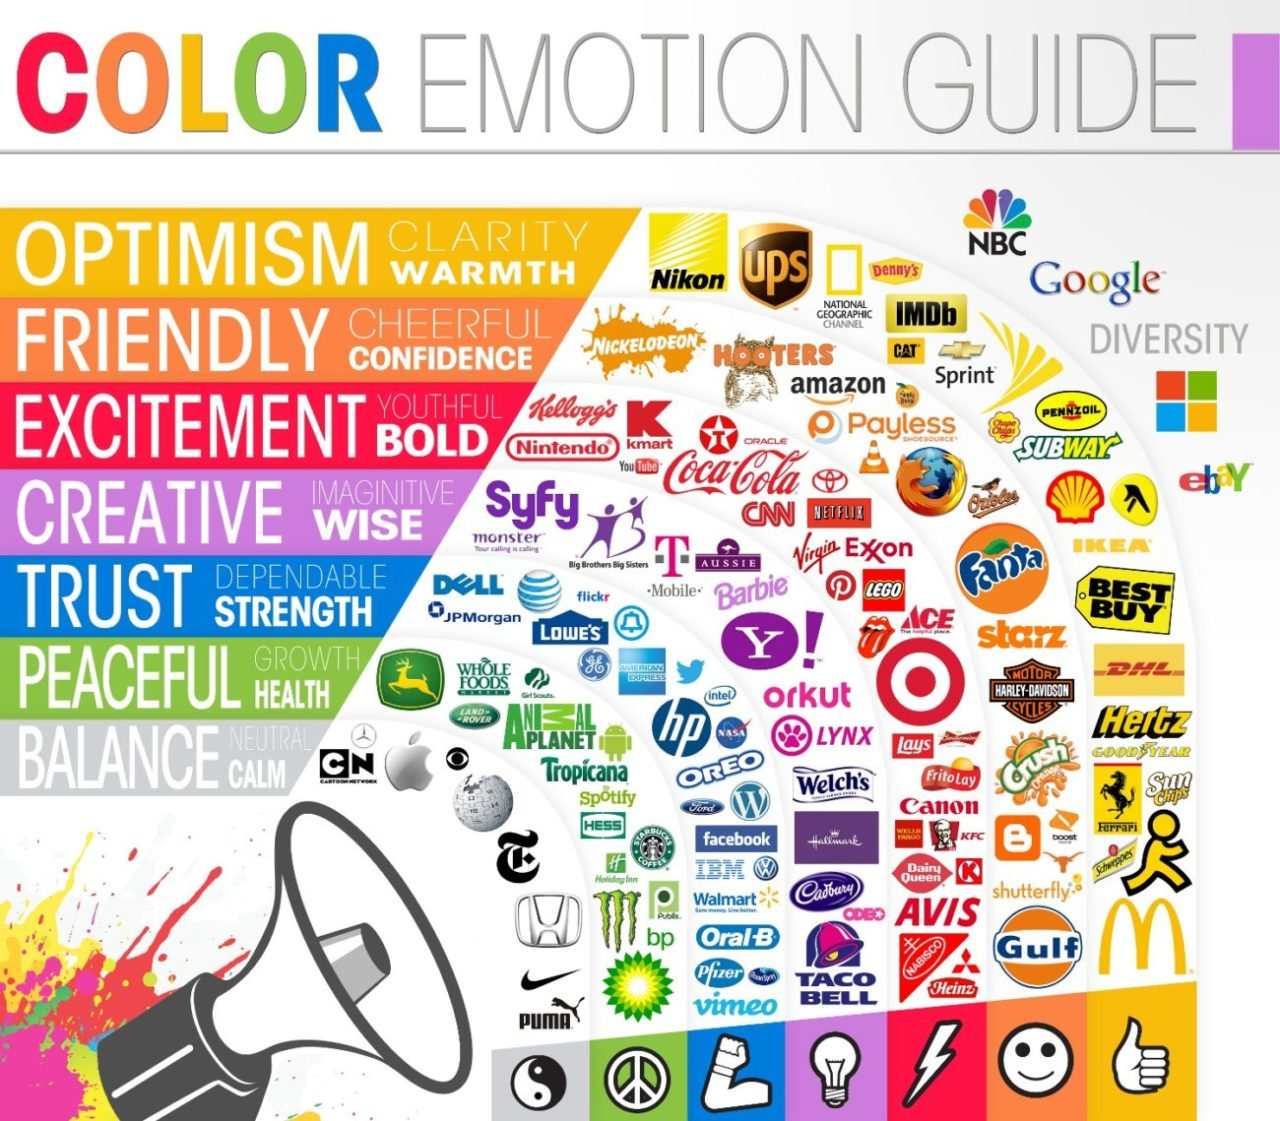 Gavin Consulting - The Gavin Report - Pyschology of Color in Marketing - Emotion Guide